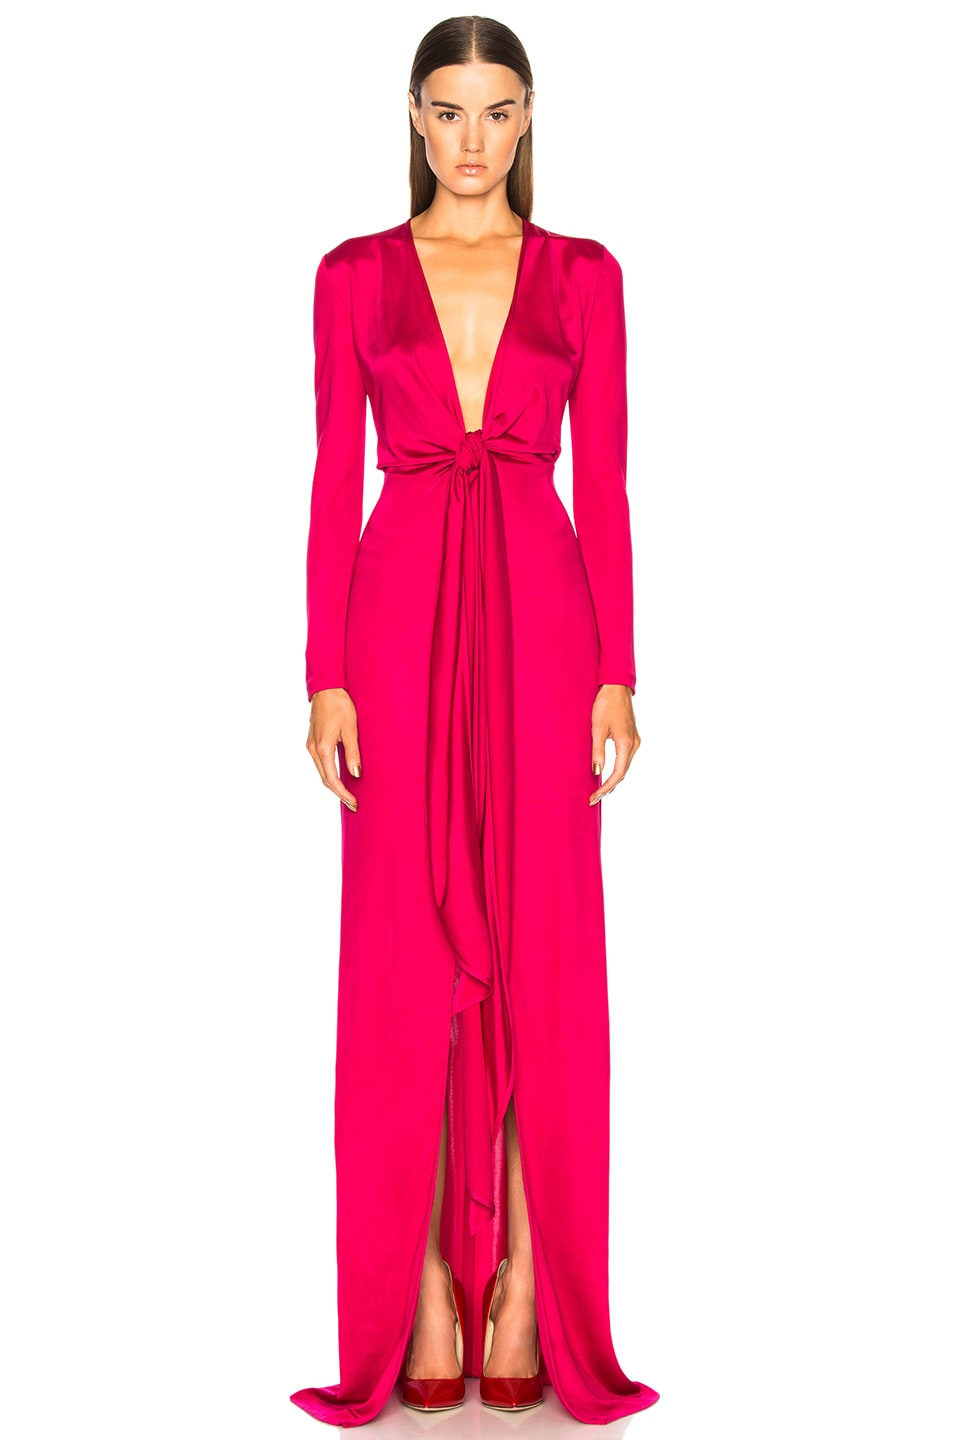 Givenchy Shiny Viscose Jersey Tie Knot Gown in Black